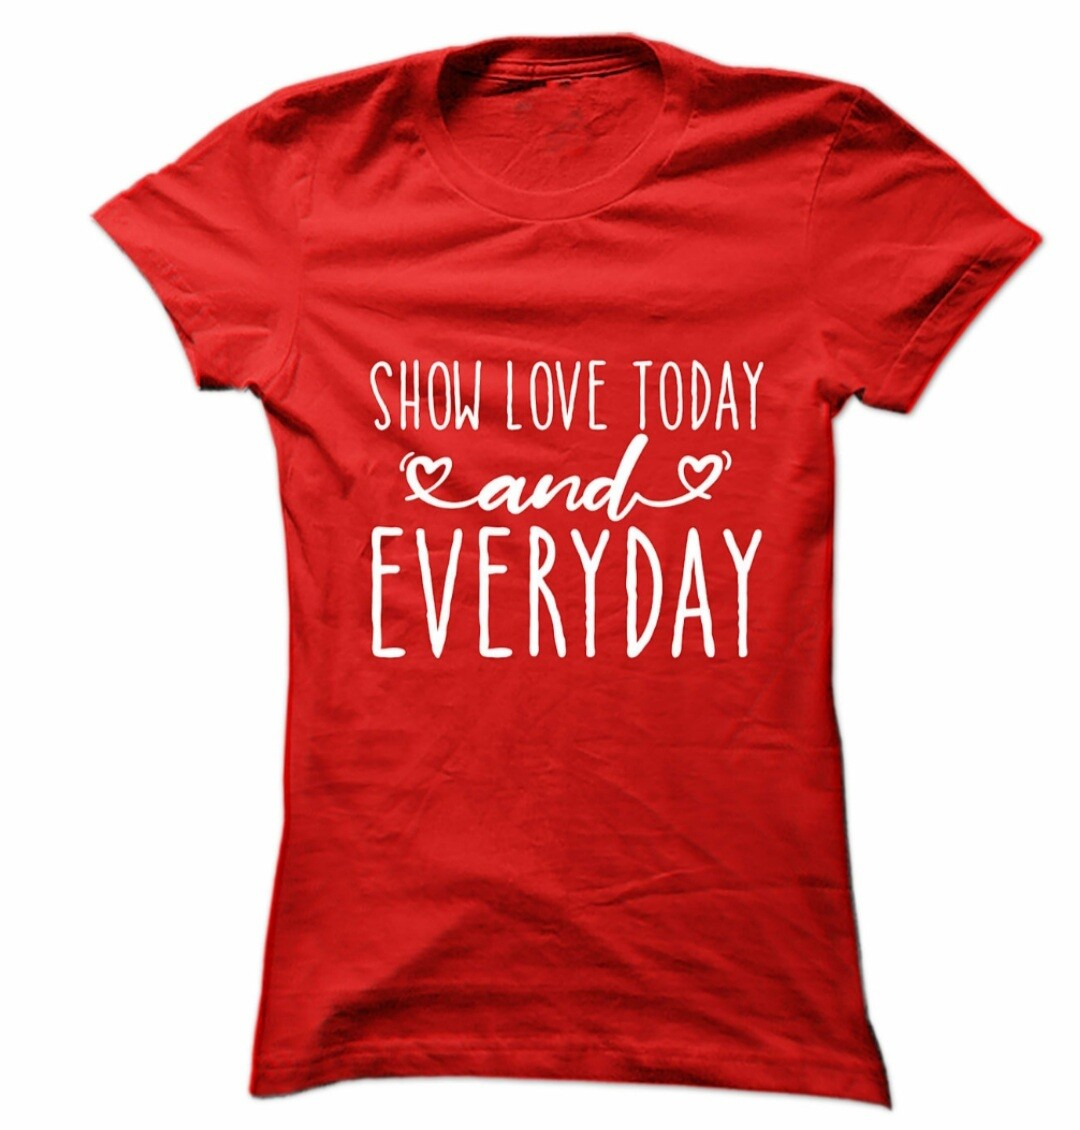 Show Love Today and Everyday  T-Shirt